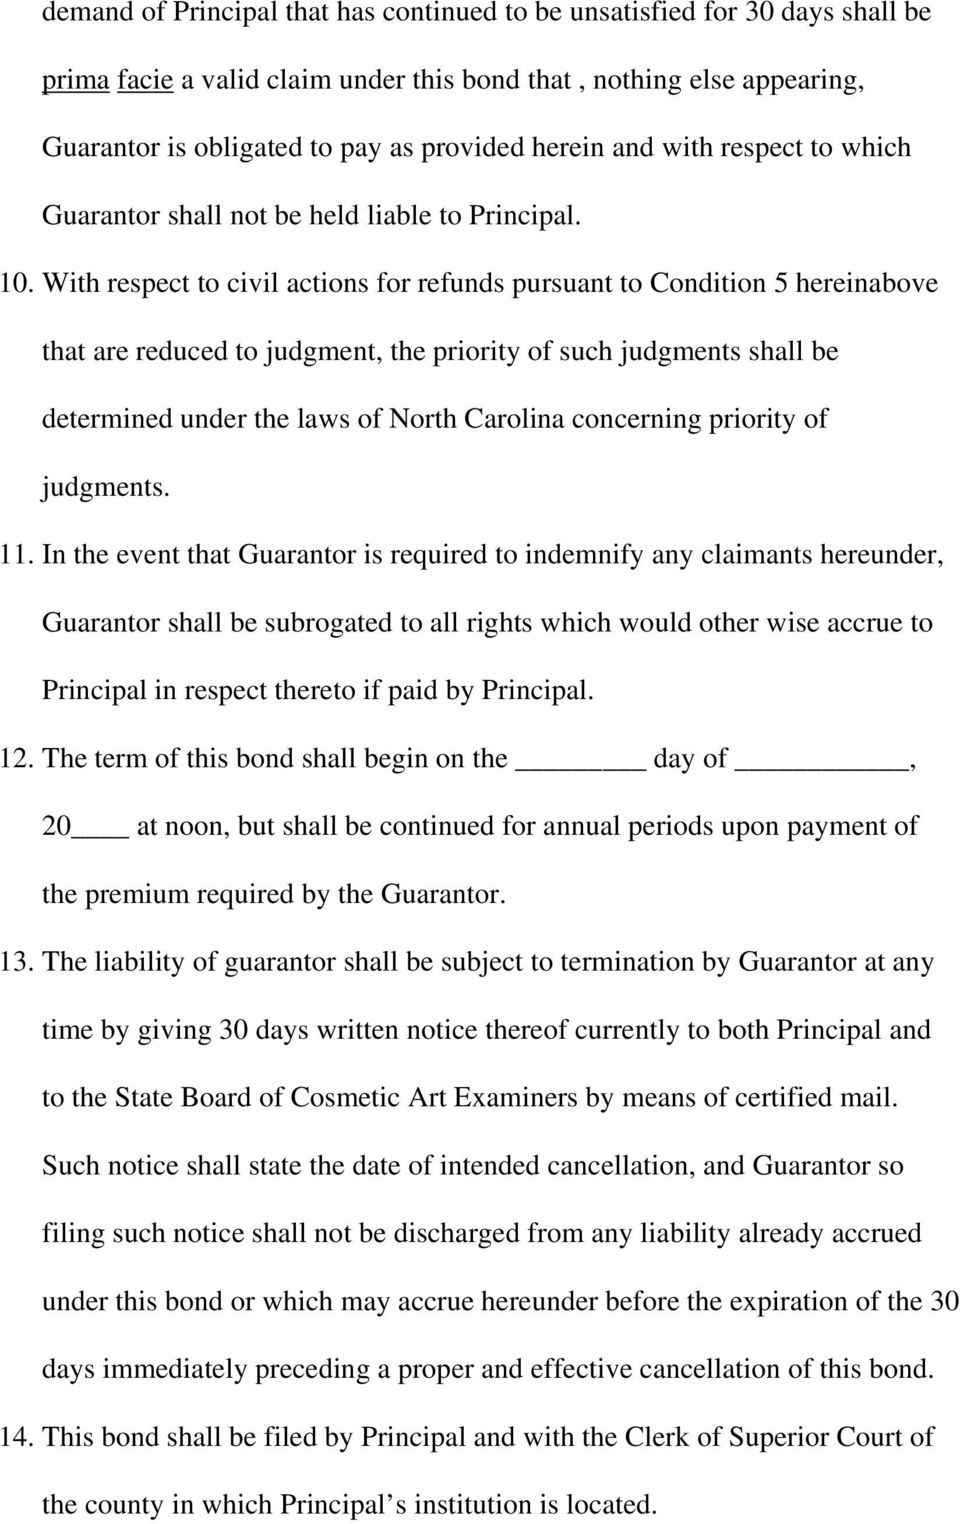 With respect to civil actions for refunds pursuant to Condition 5 hereinabove that are reduced to judgment, the priority of such judgments shall be determined under the laws of North Carolina